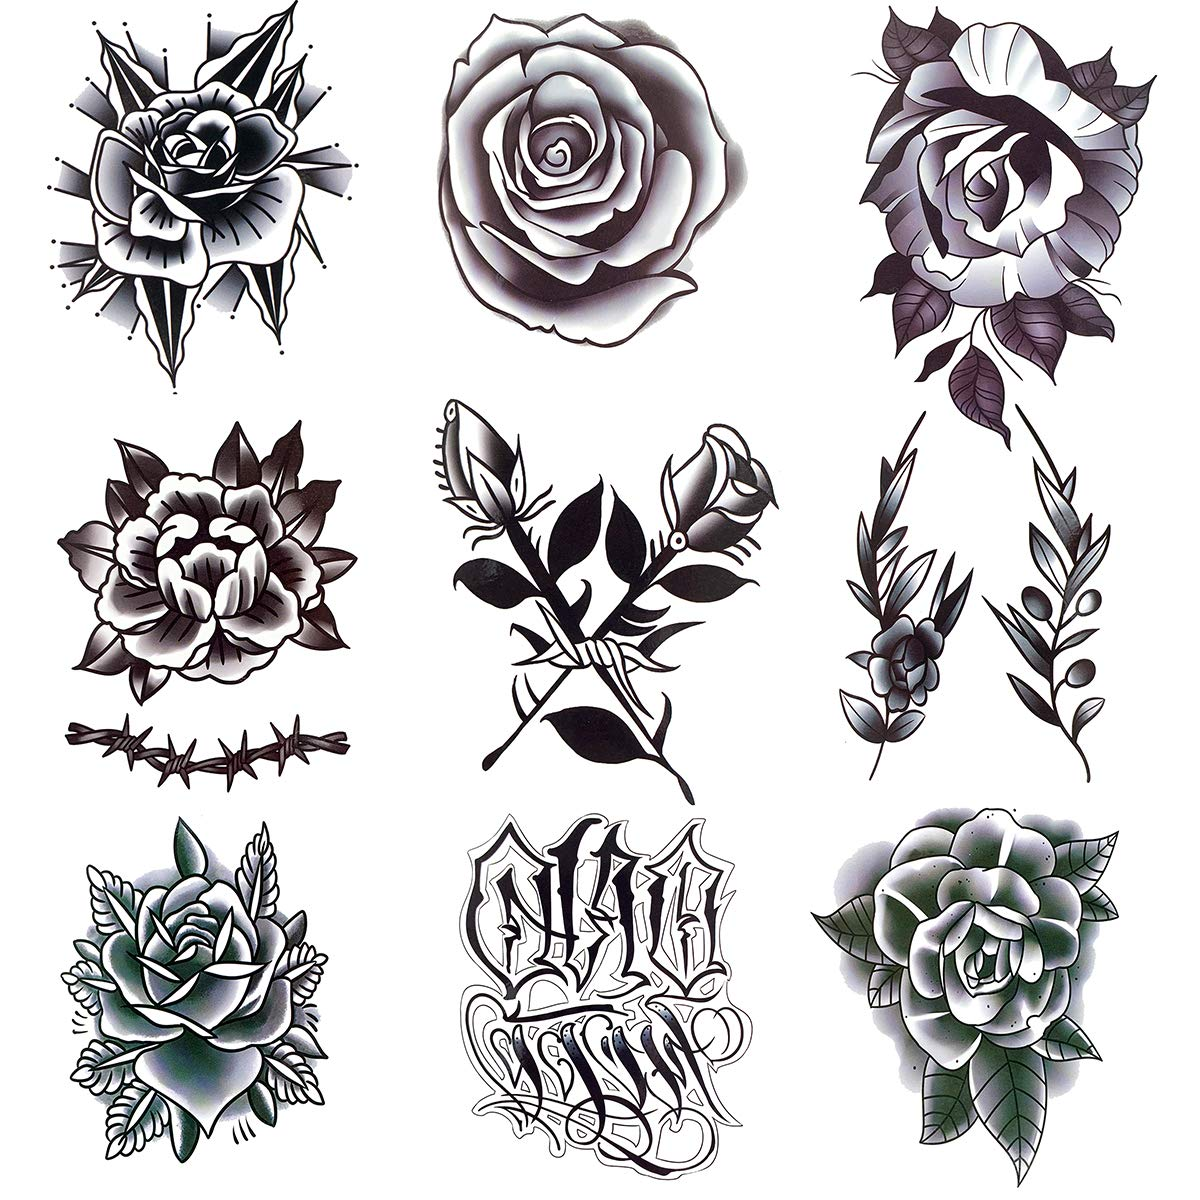 Oottati Waterproof 9 Sheets Back of Hand Fake Temporary Tattoo Stickers - Black Gothic Flower Rose